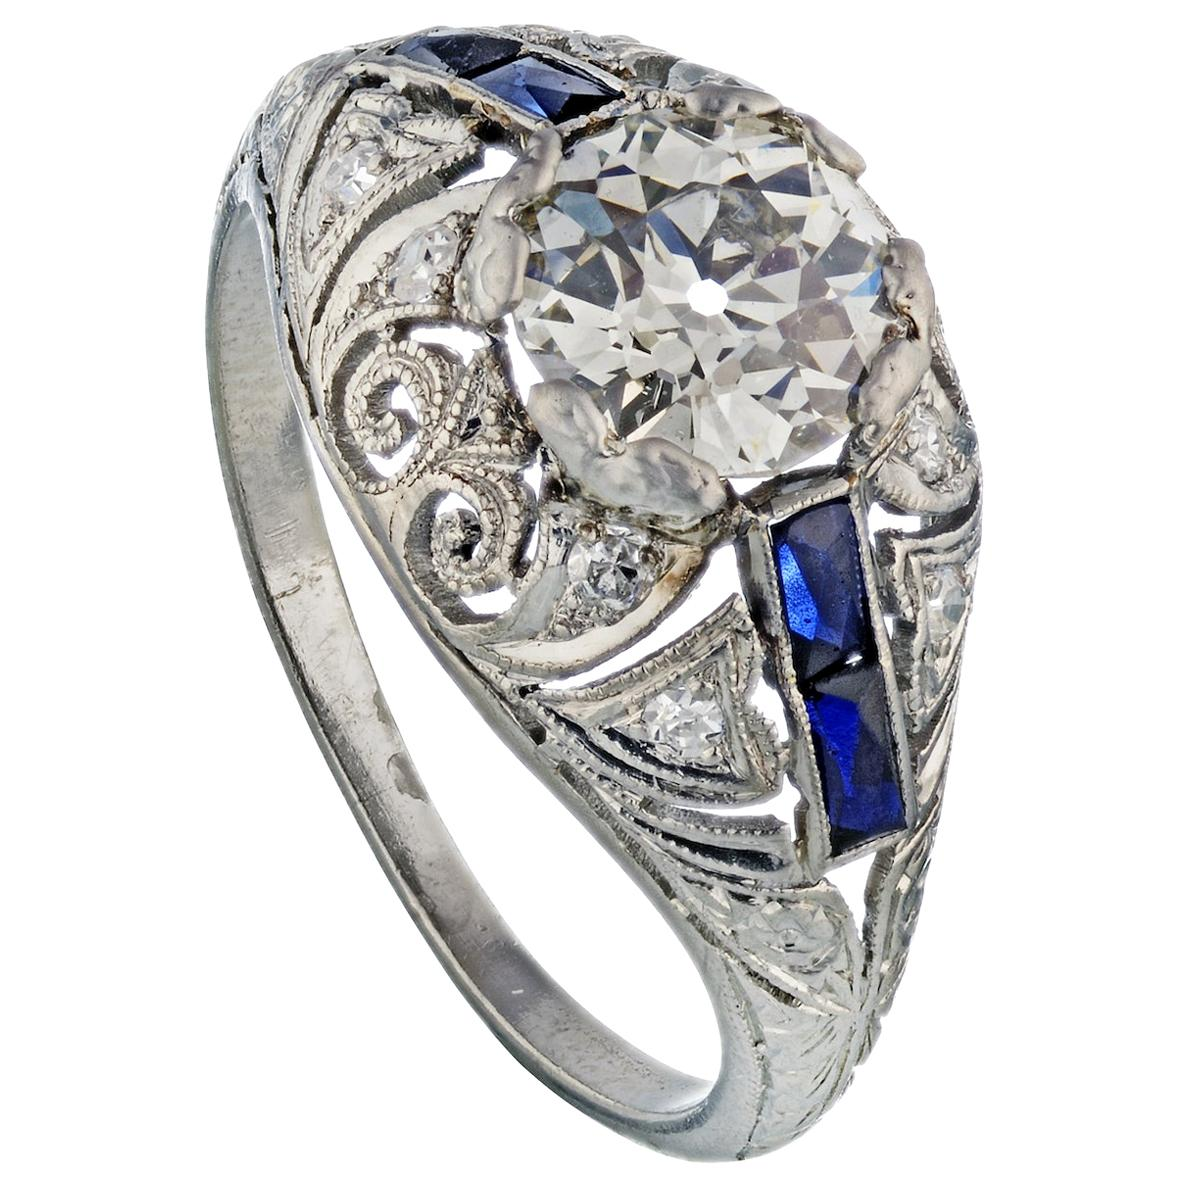 1.21 Carat Old European Cut Art Deco Sapphire Accented Engagement Ring